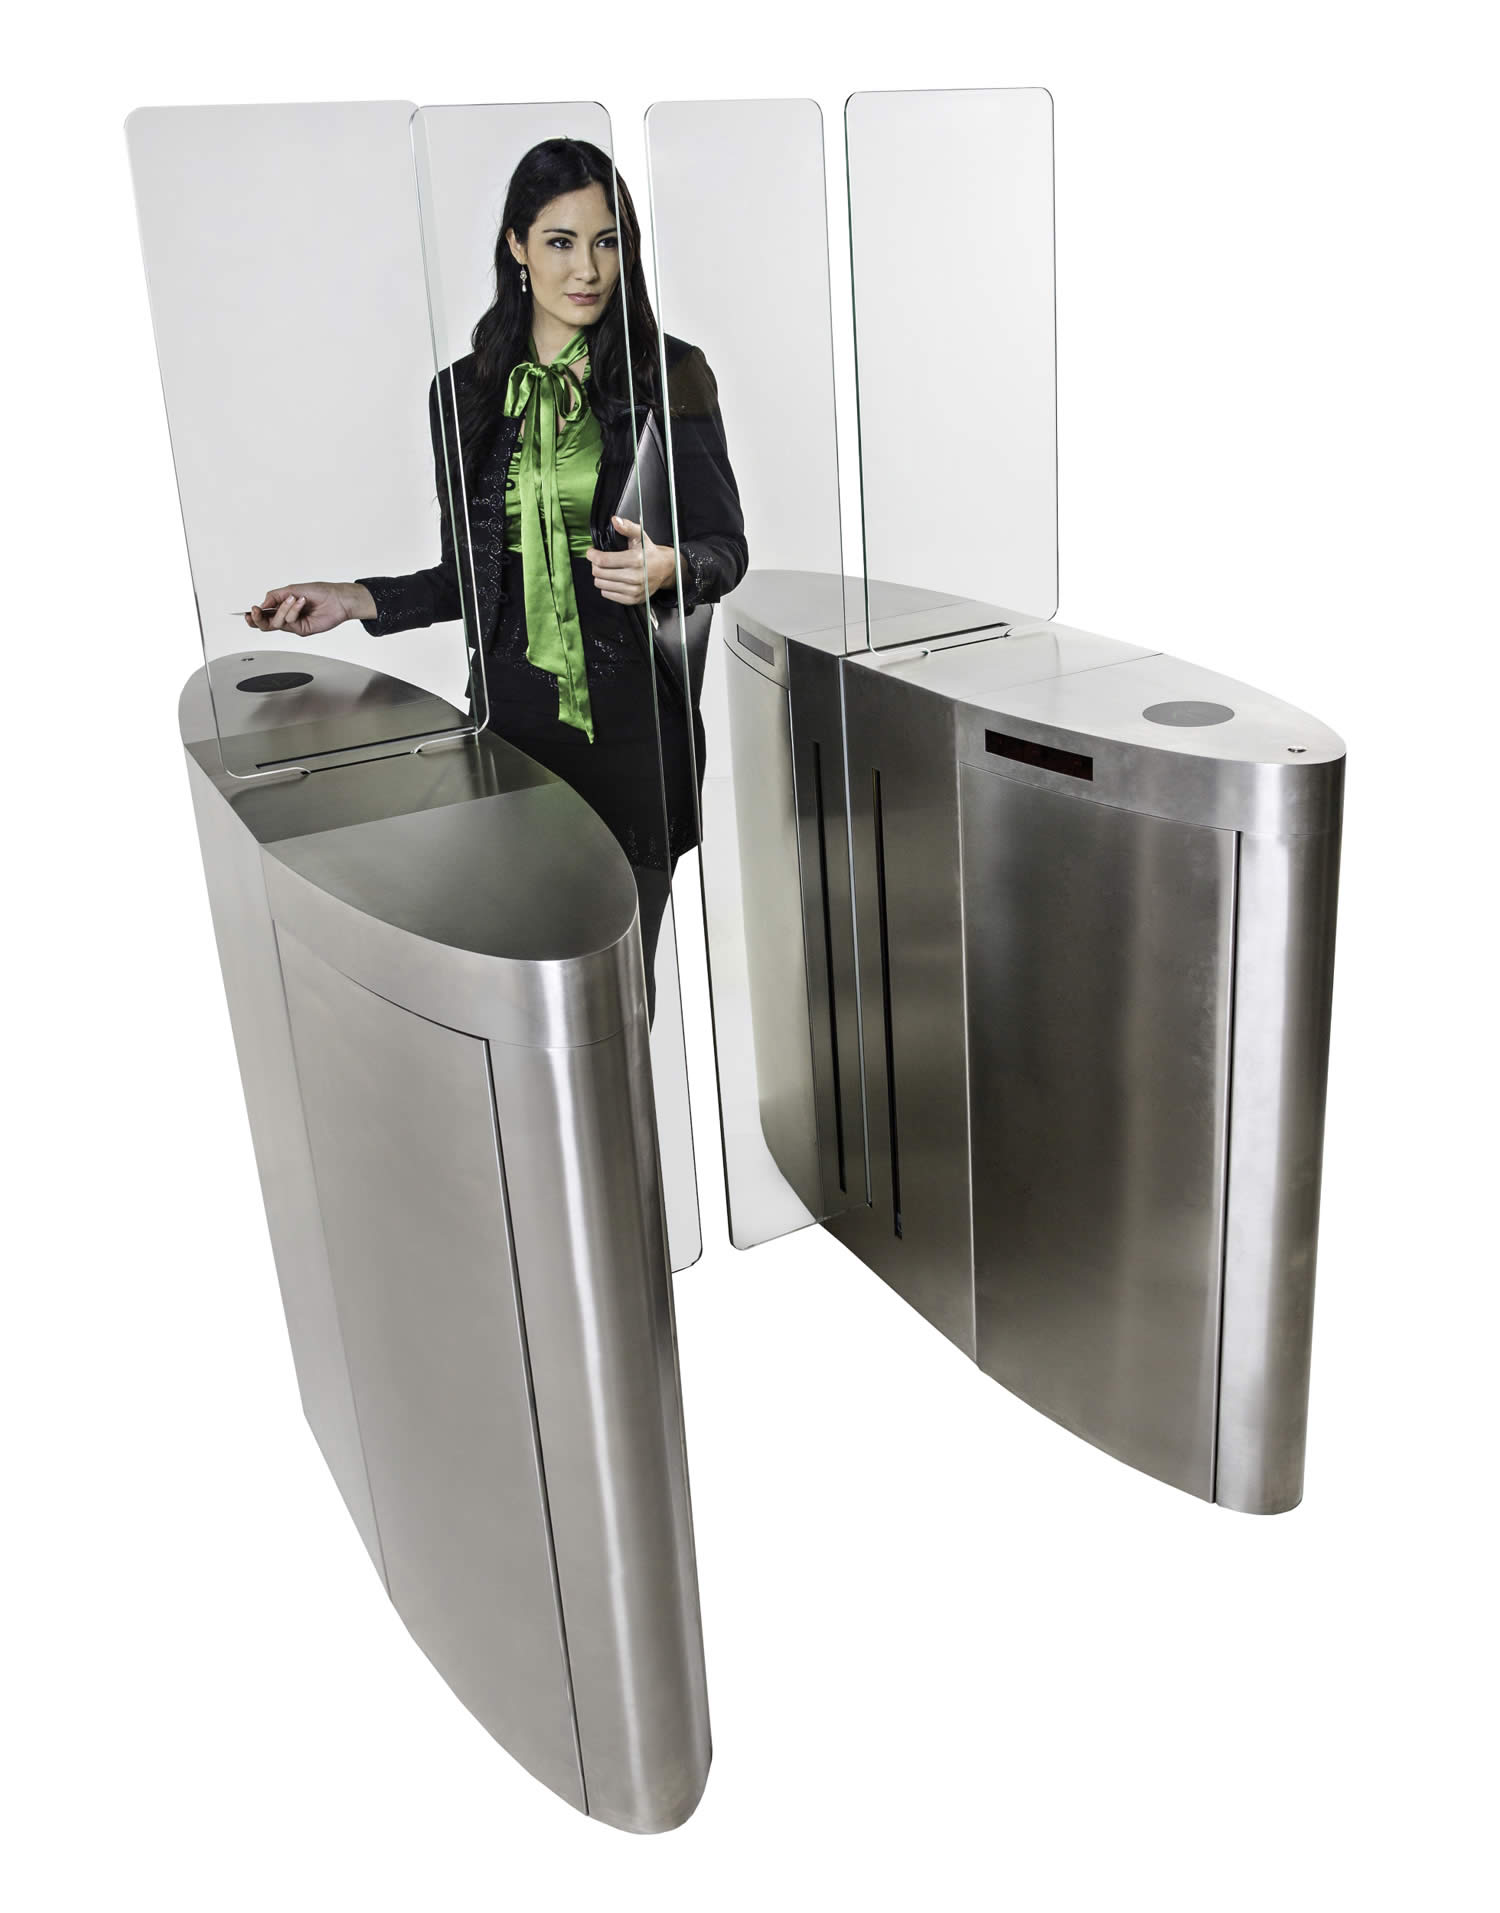 Turnstar Systems offers security and access in stylish turnstile